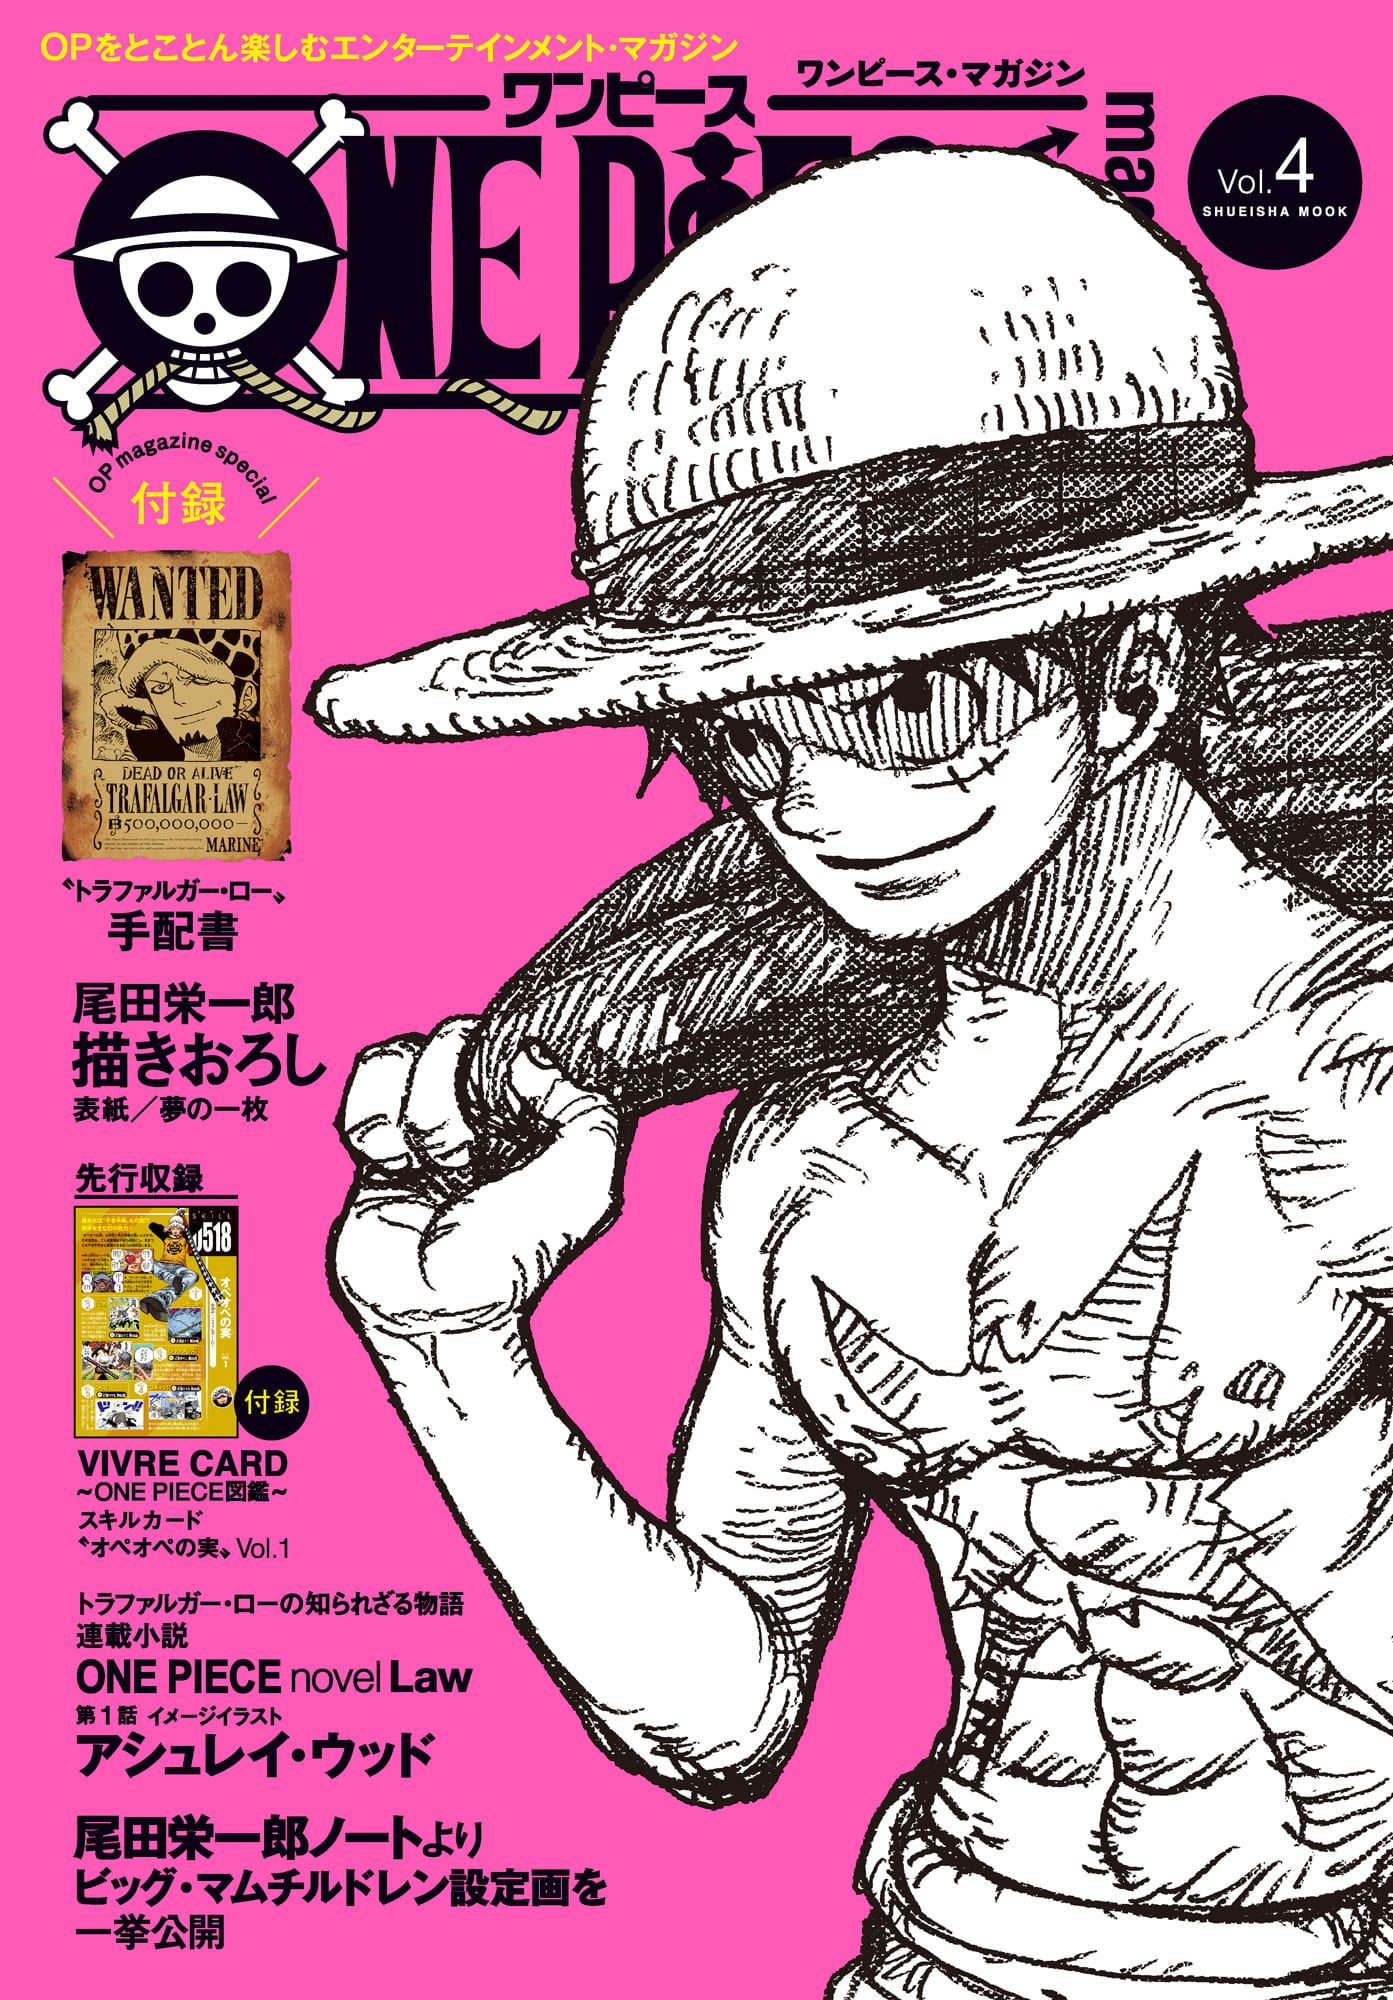 ONE PIECE magazine Vol.4